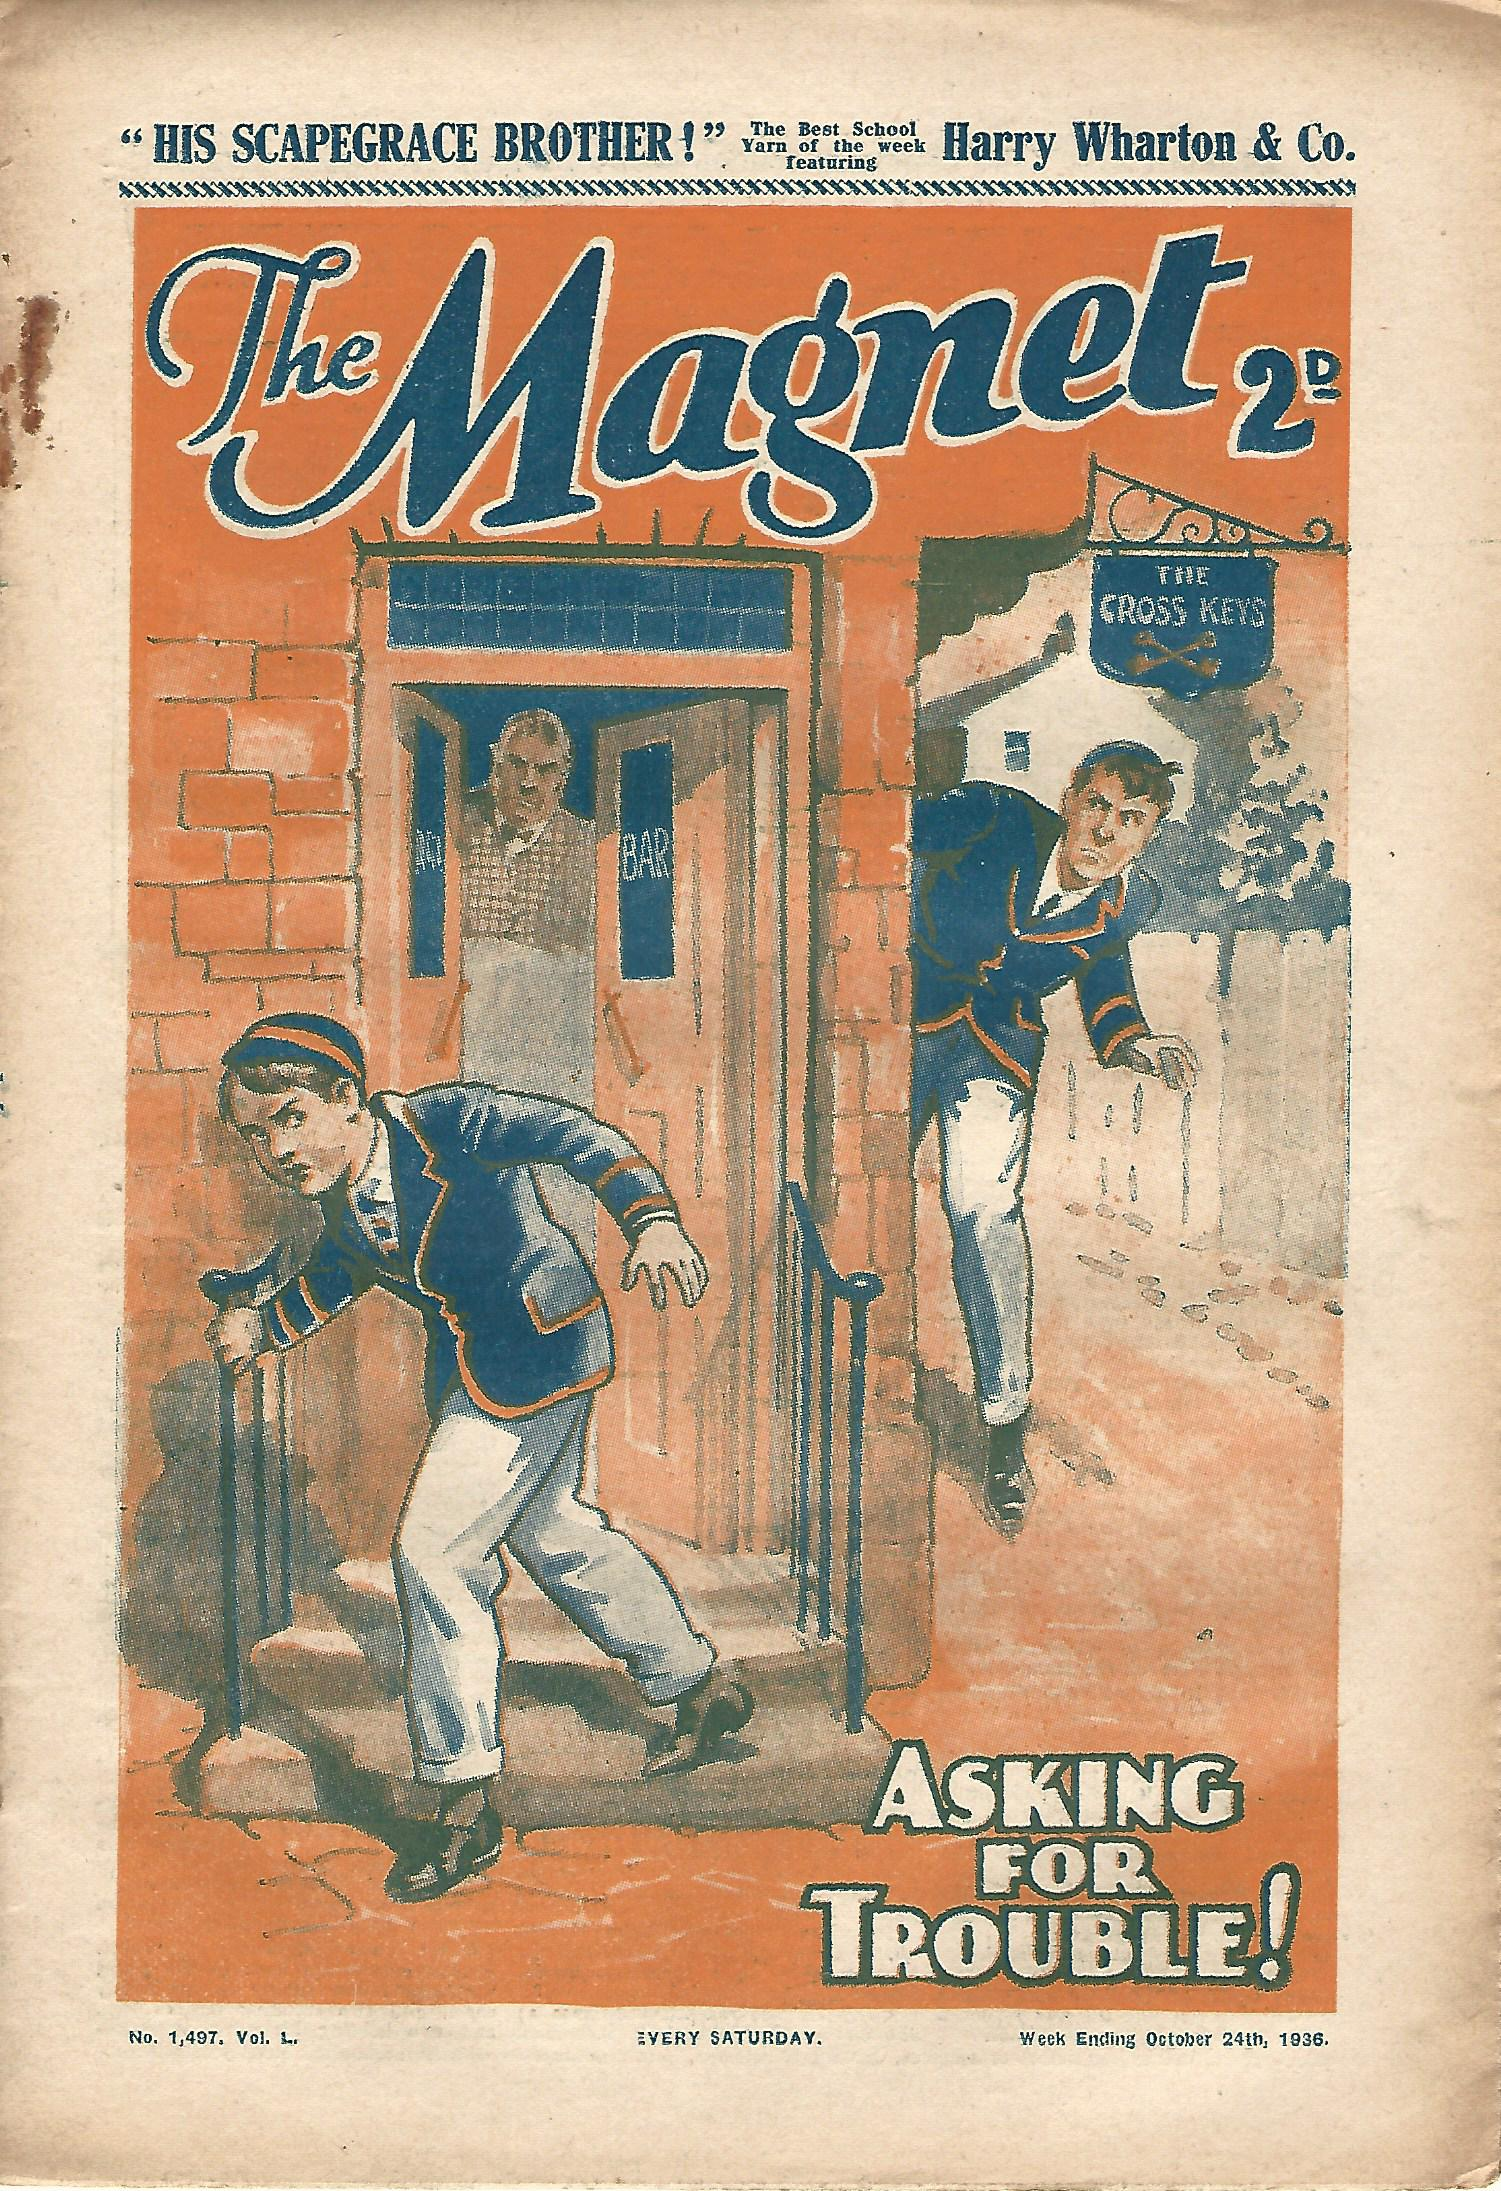 Image for The Magnet No.1497 Vol. L.